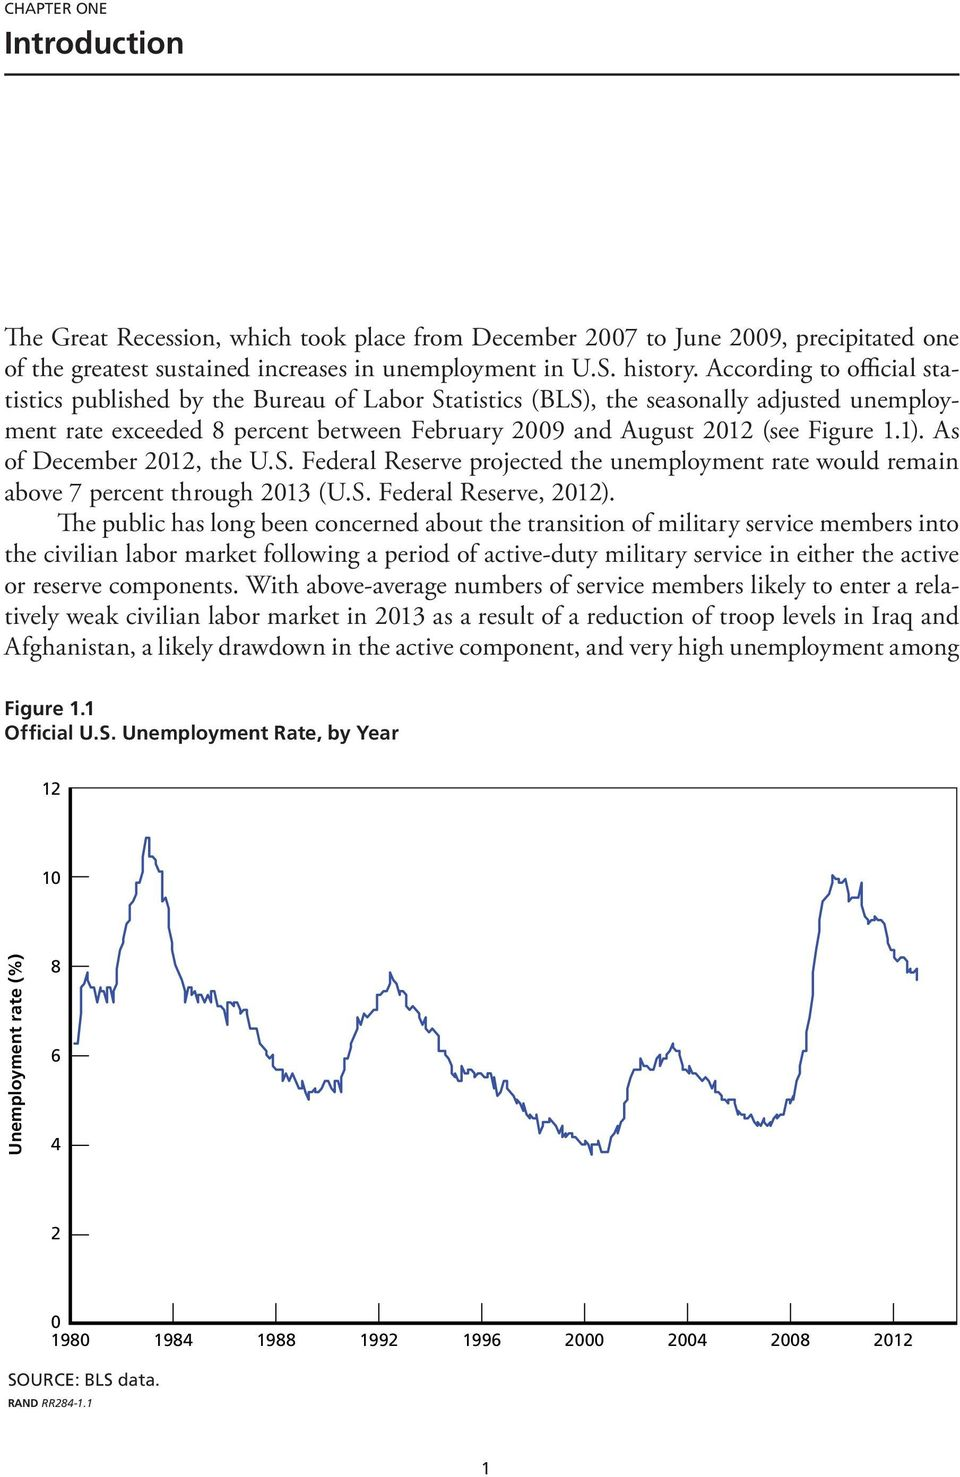 As of December 2012, the U.S. Federal Reserve projected the unemployment rate would remain above 7 percent through 2013 (U.S. Federal Reserve, 2012).